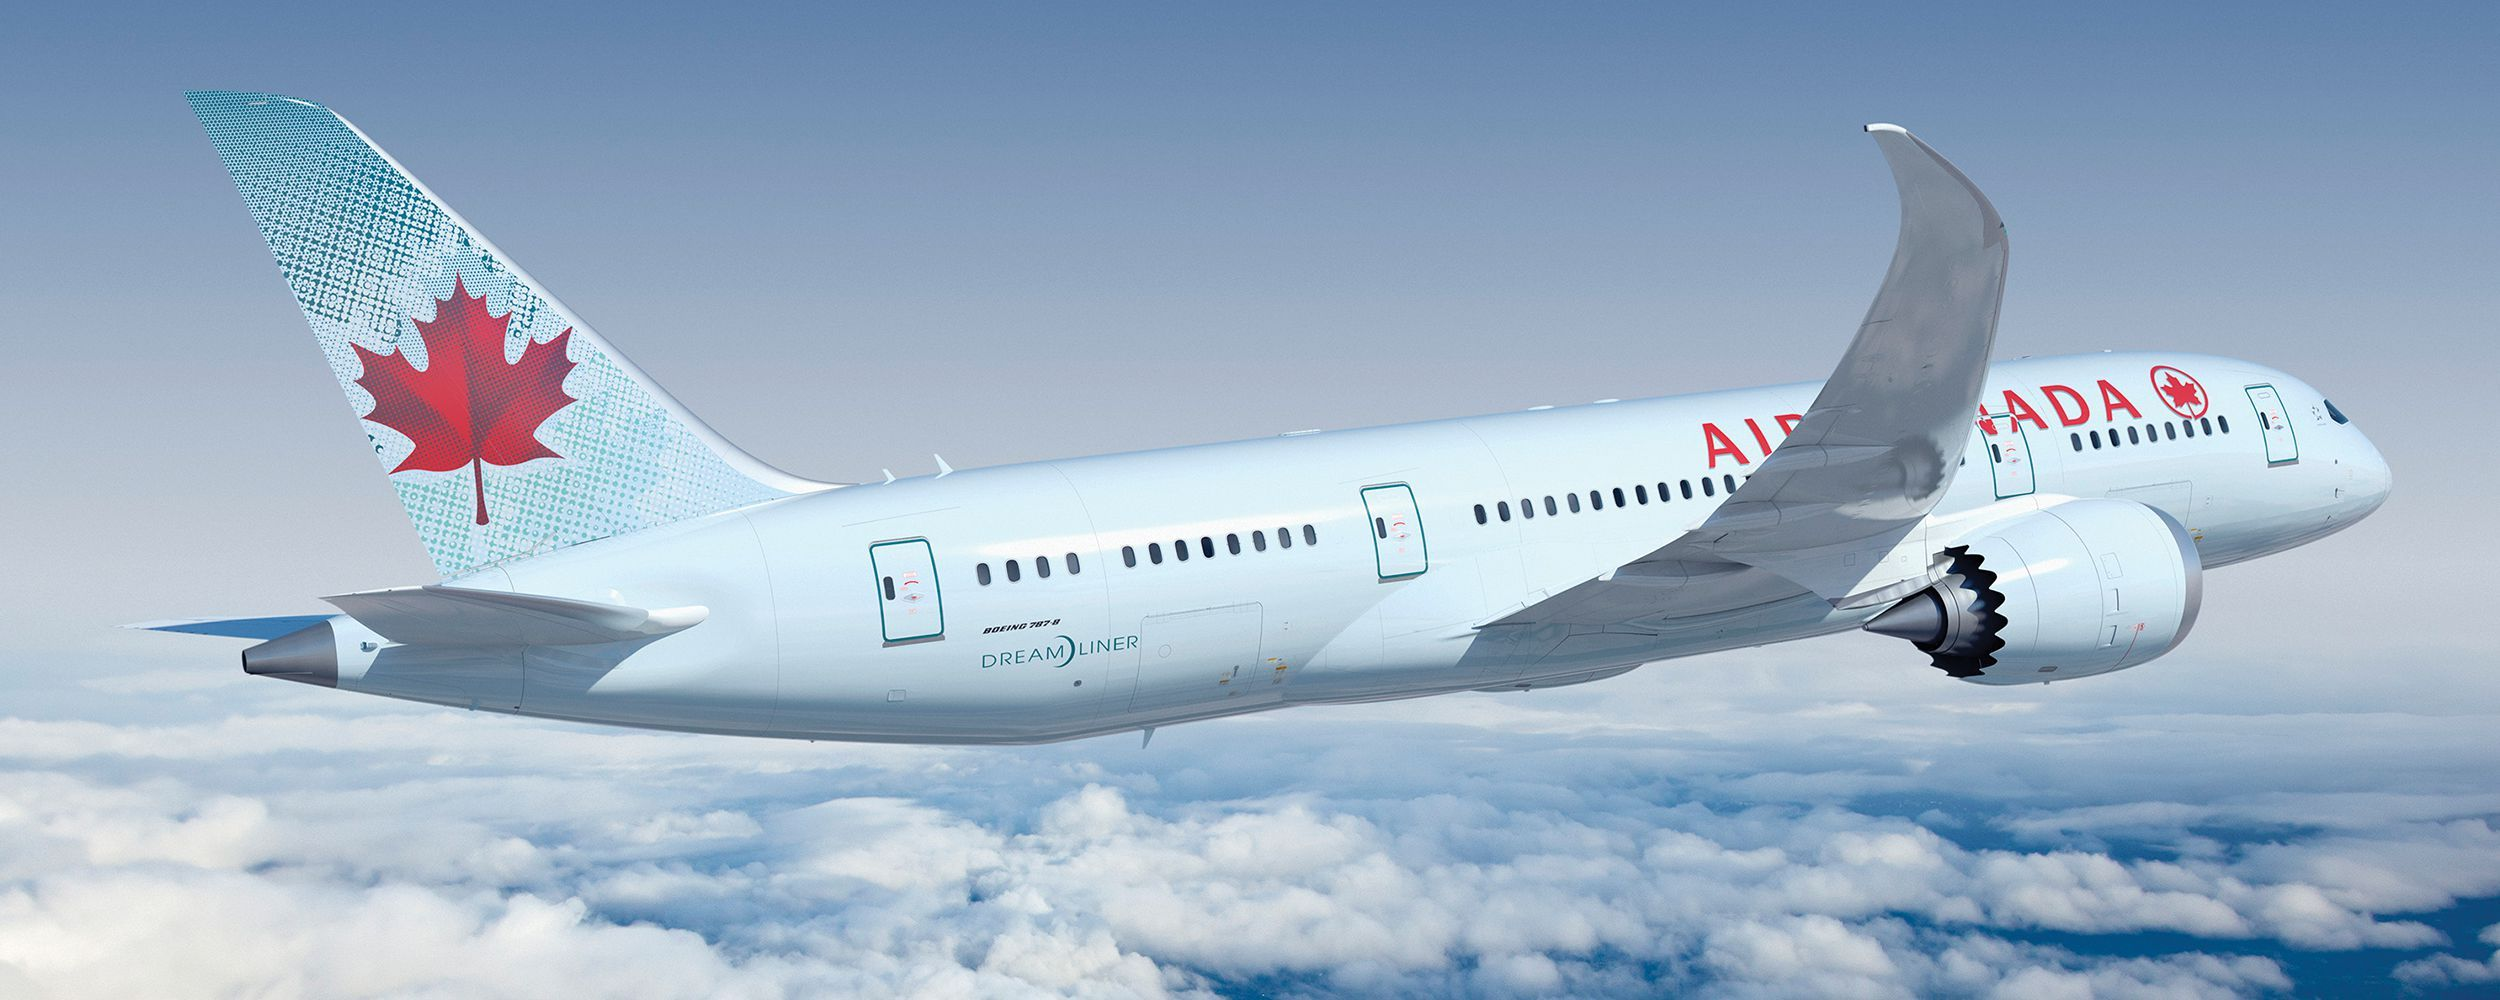 Pin by Nicole Browning on Travel Air canada flights